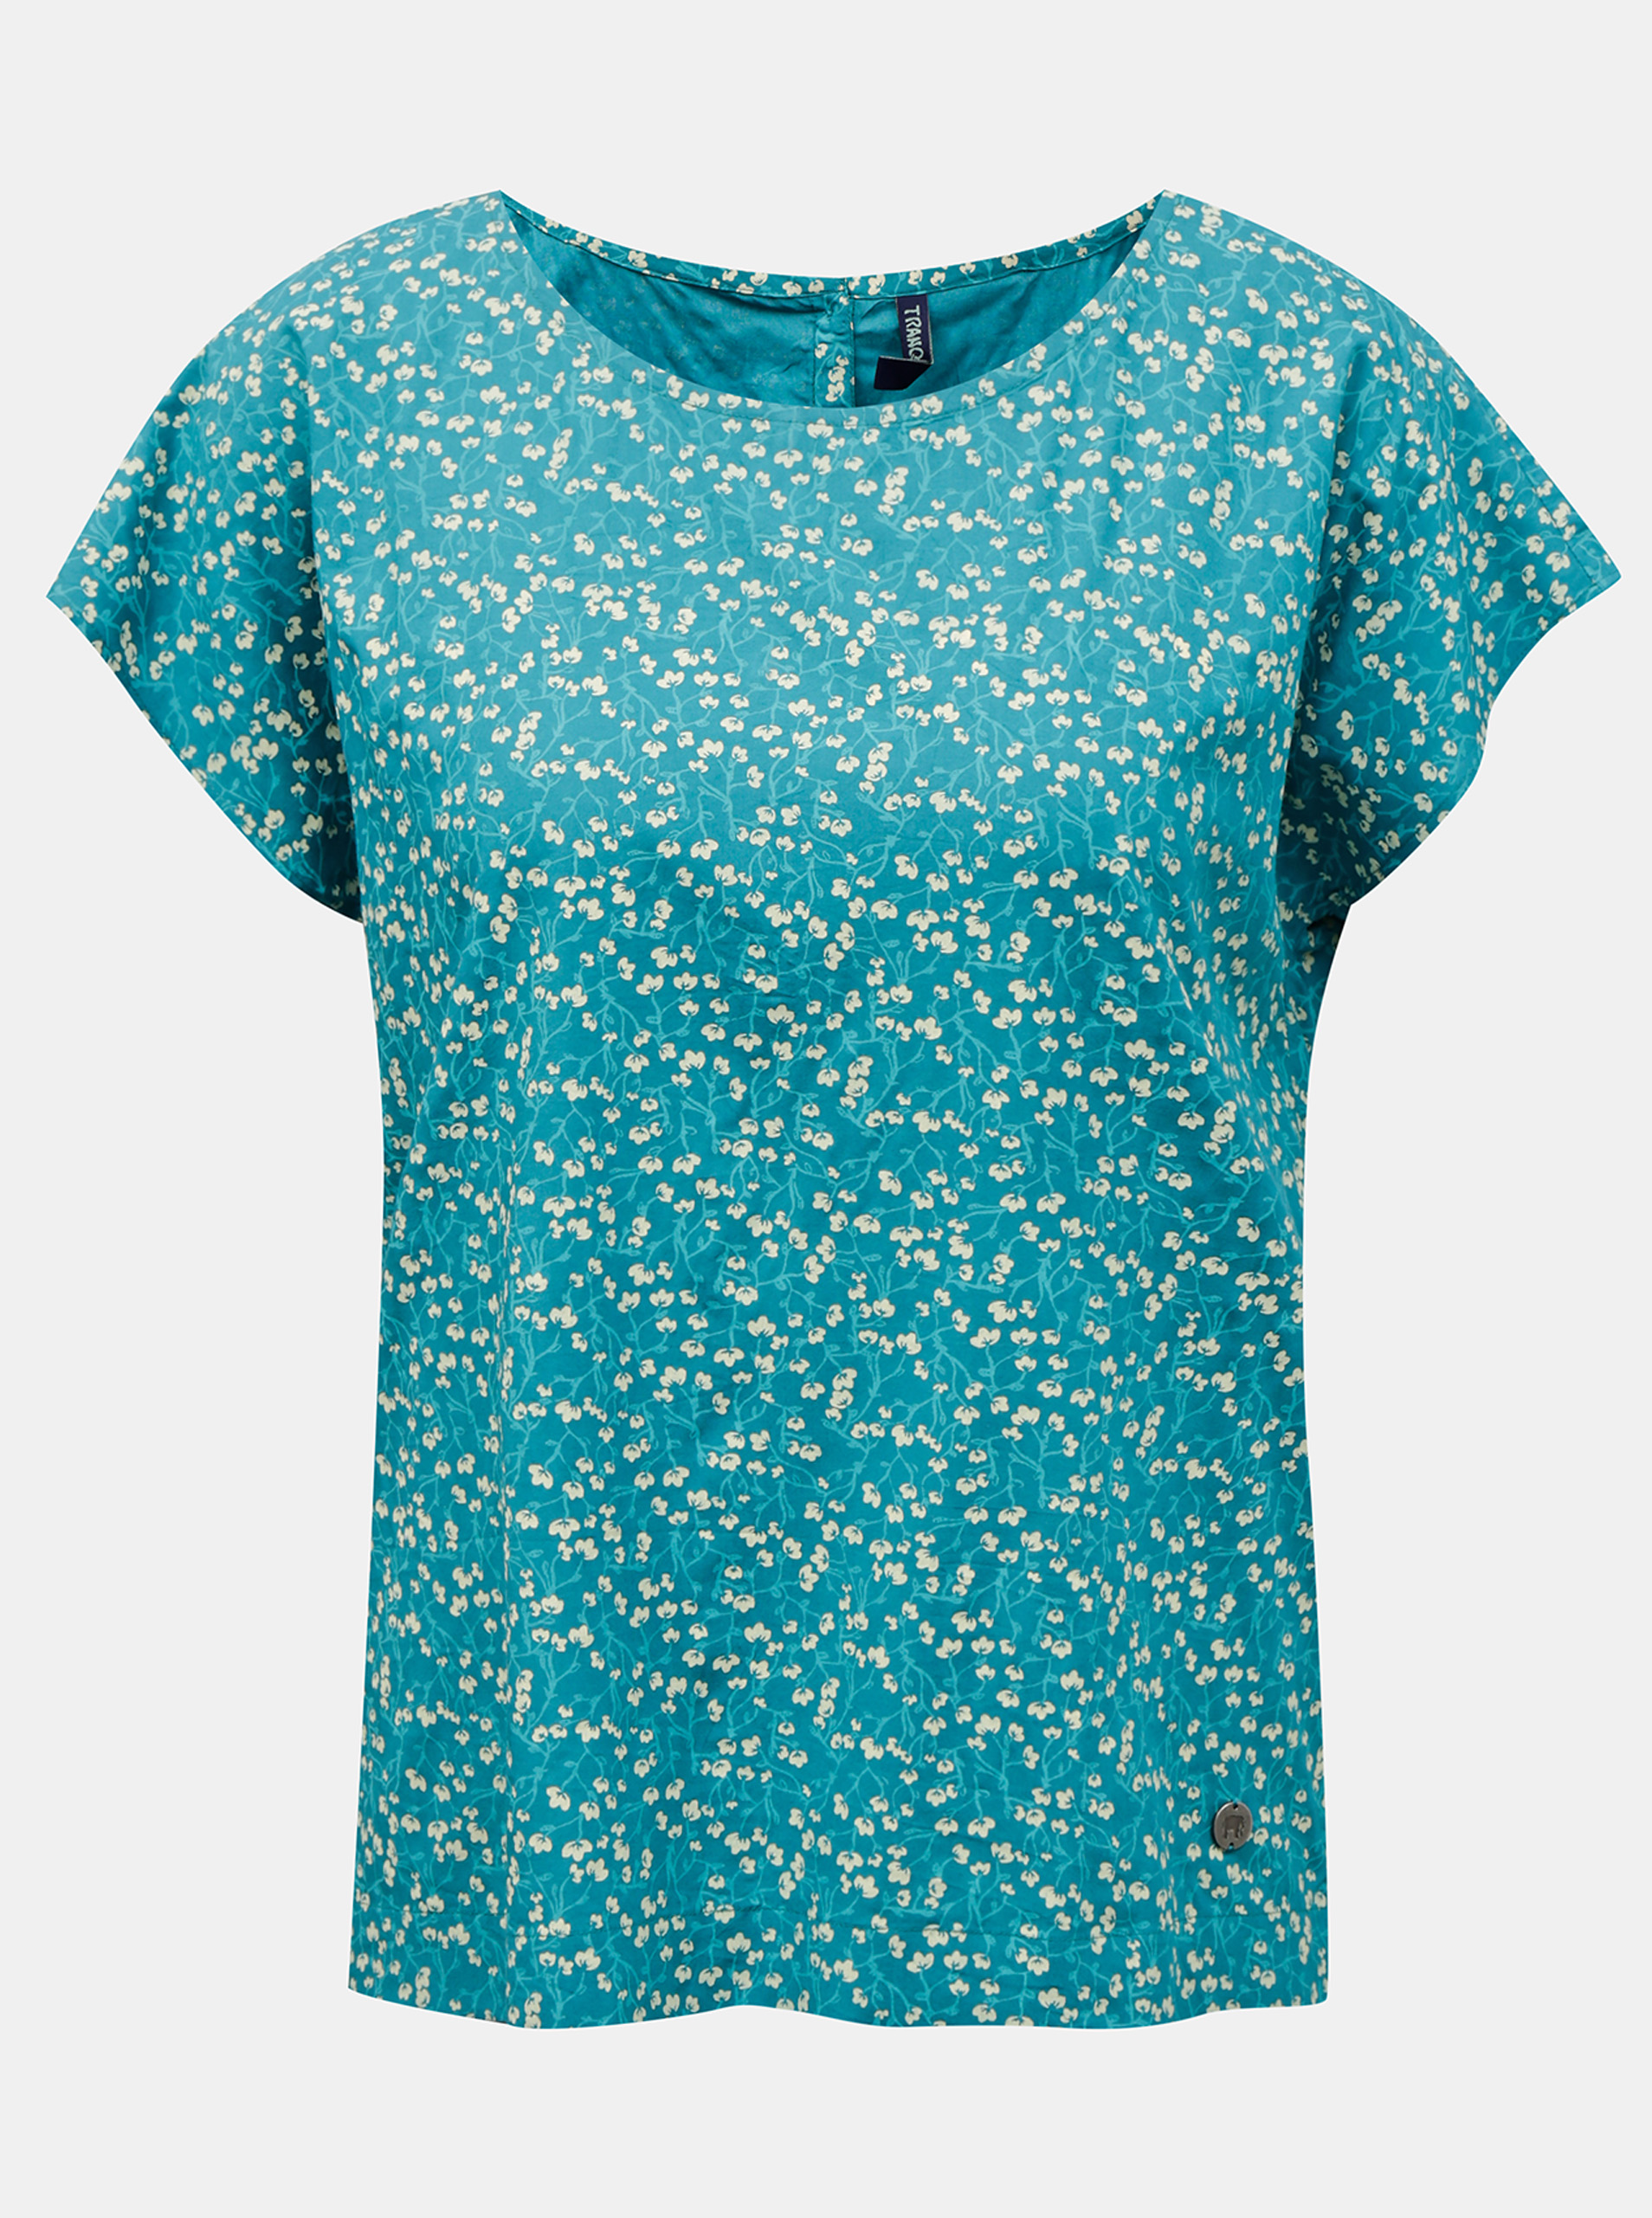 Tranquillo turquoise T-shirt with floral motif